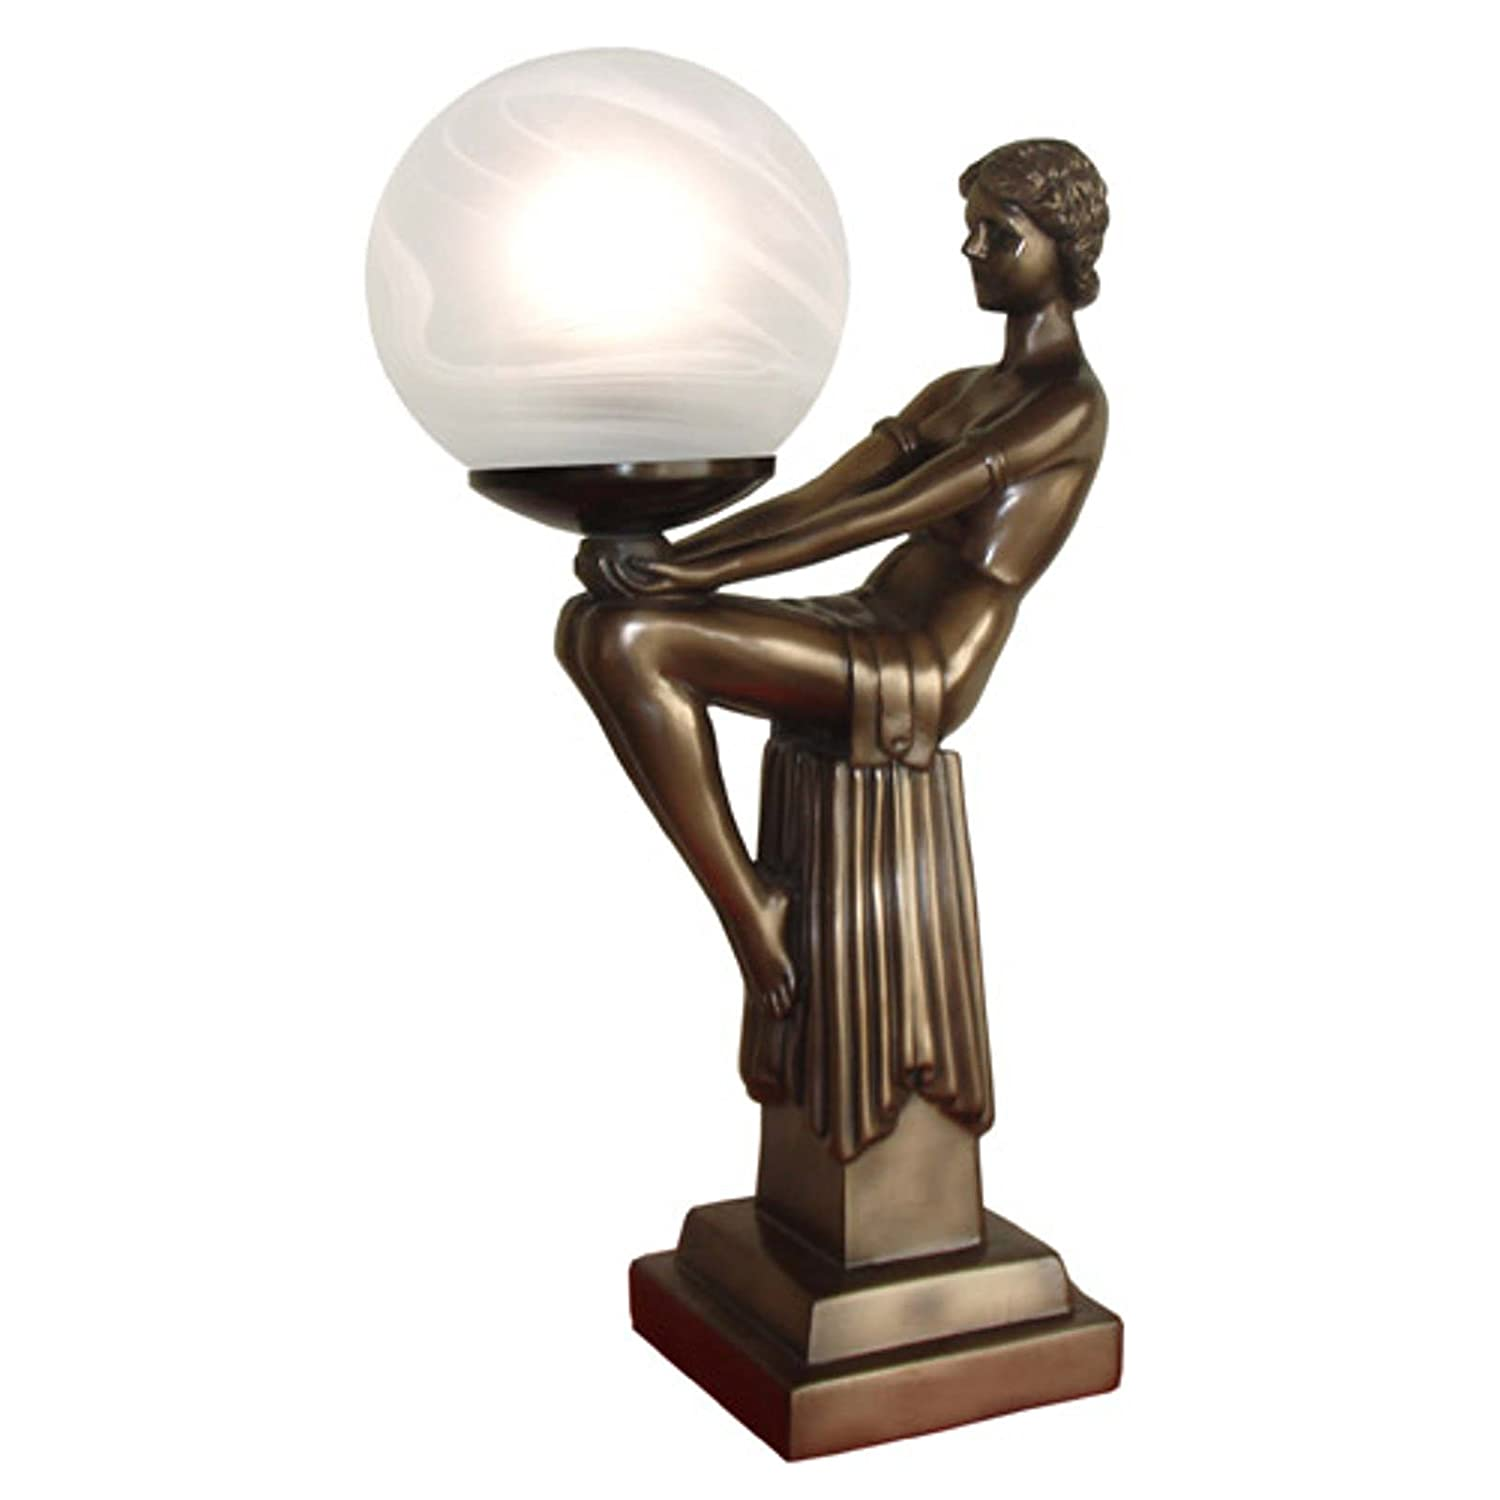 max nouveau ball with antiques h items sold en cm deco collection art le lamp inch nude verrier